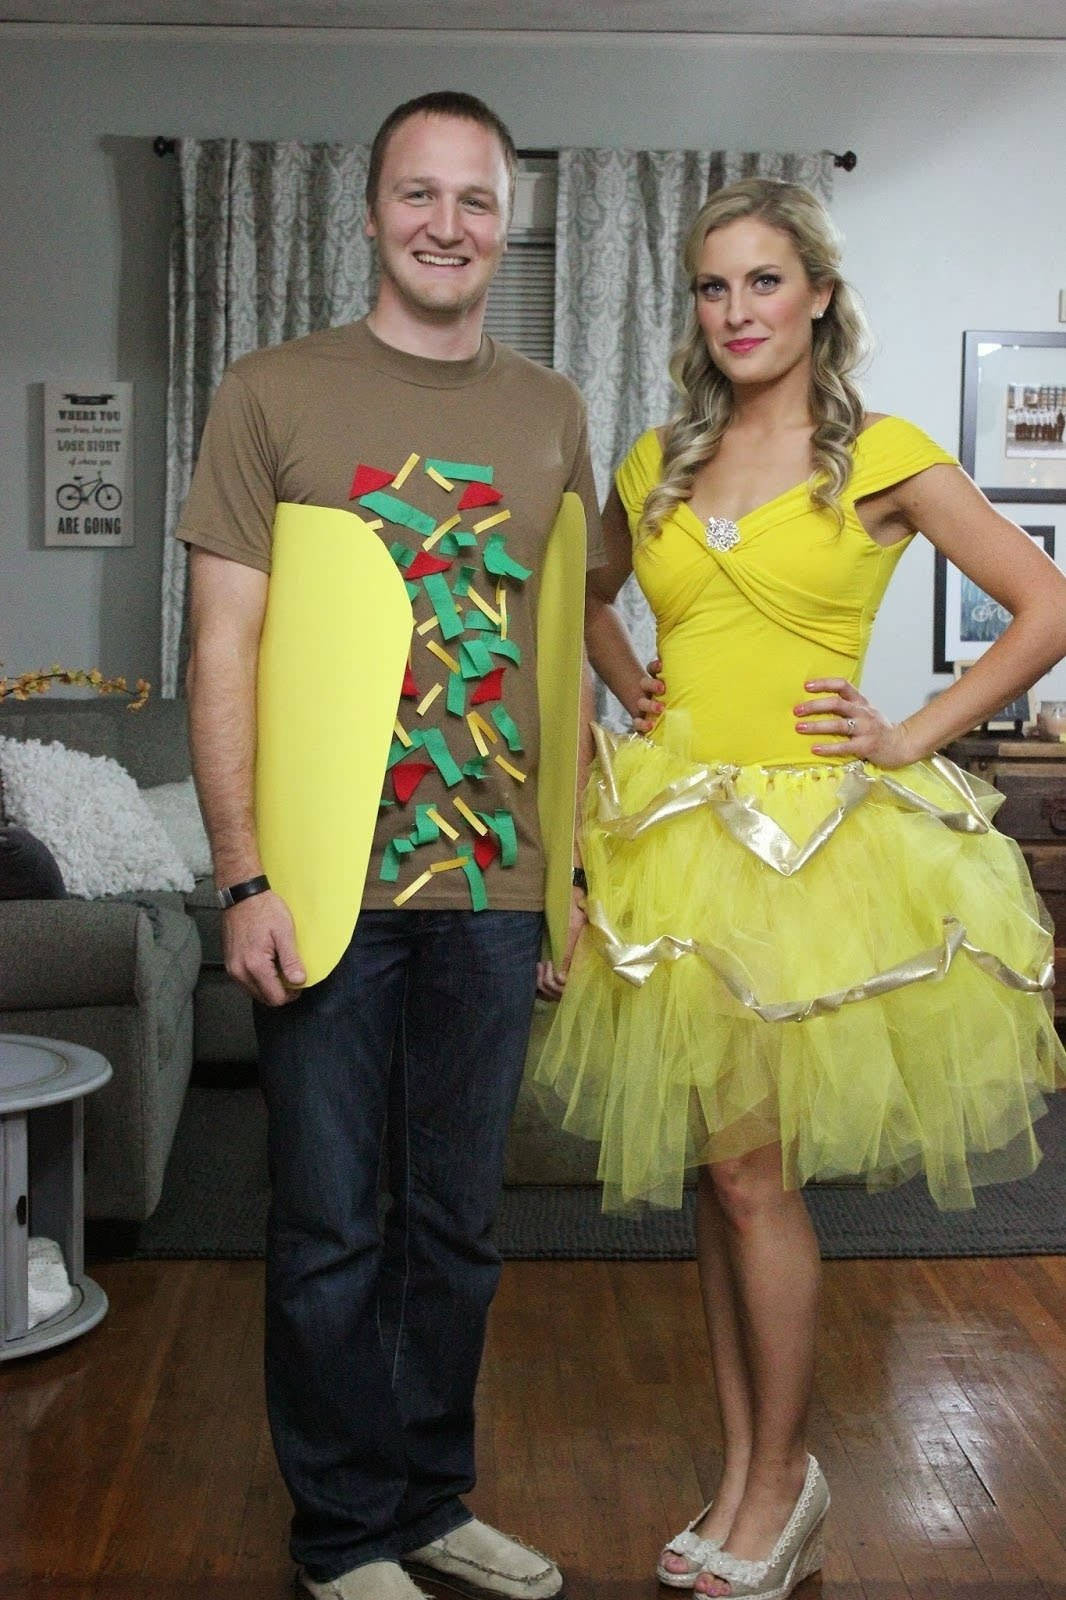 10 Most Recommended Homemade Halloween Costume Ideas For Couples 15 diy couples and family halloween costumes couples diy costumes 1 2020